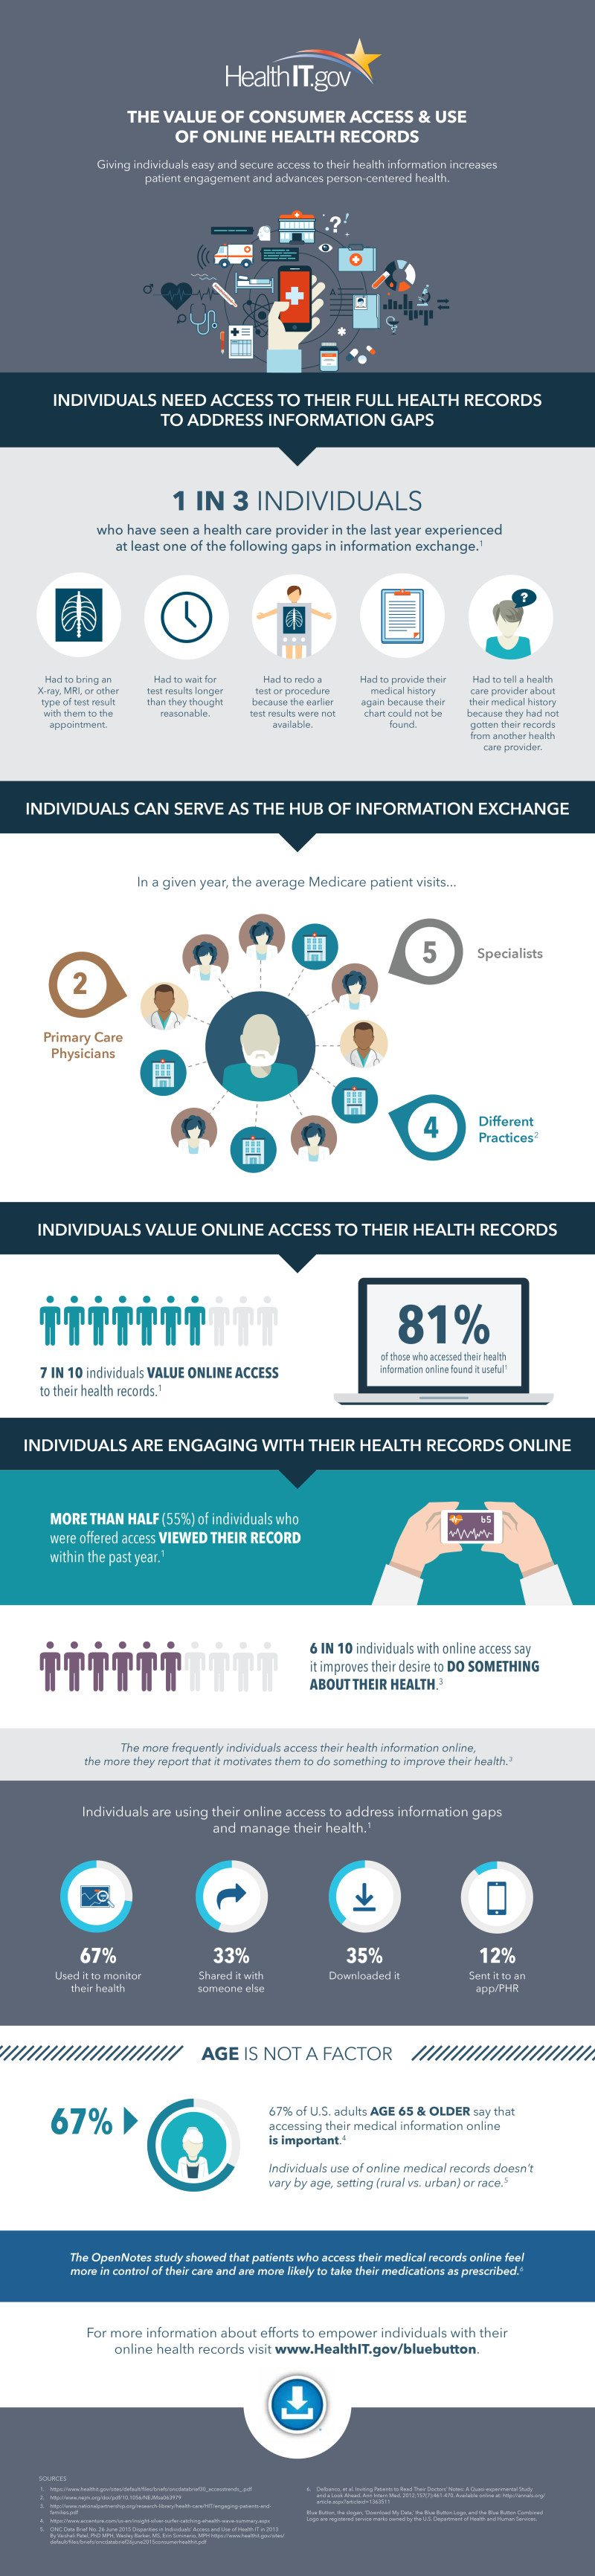 The Value of Consumer Access and Use of Online Health Records